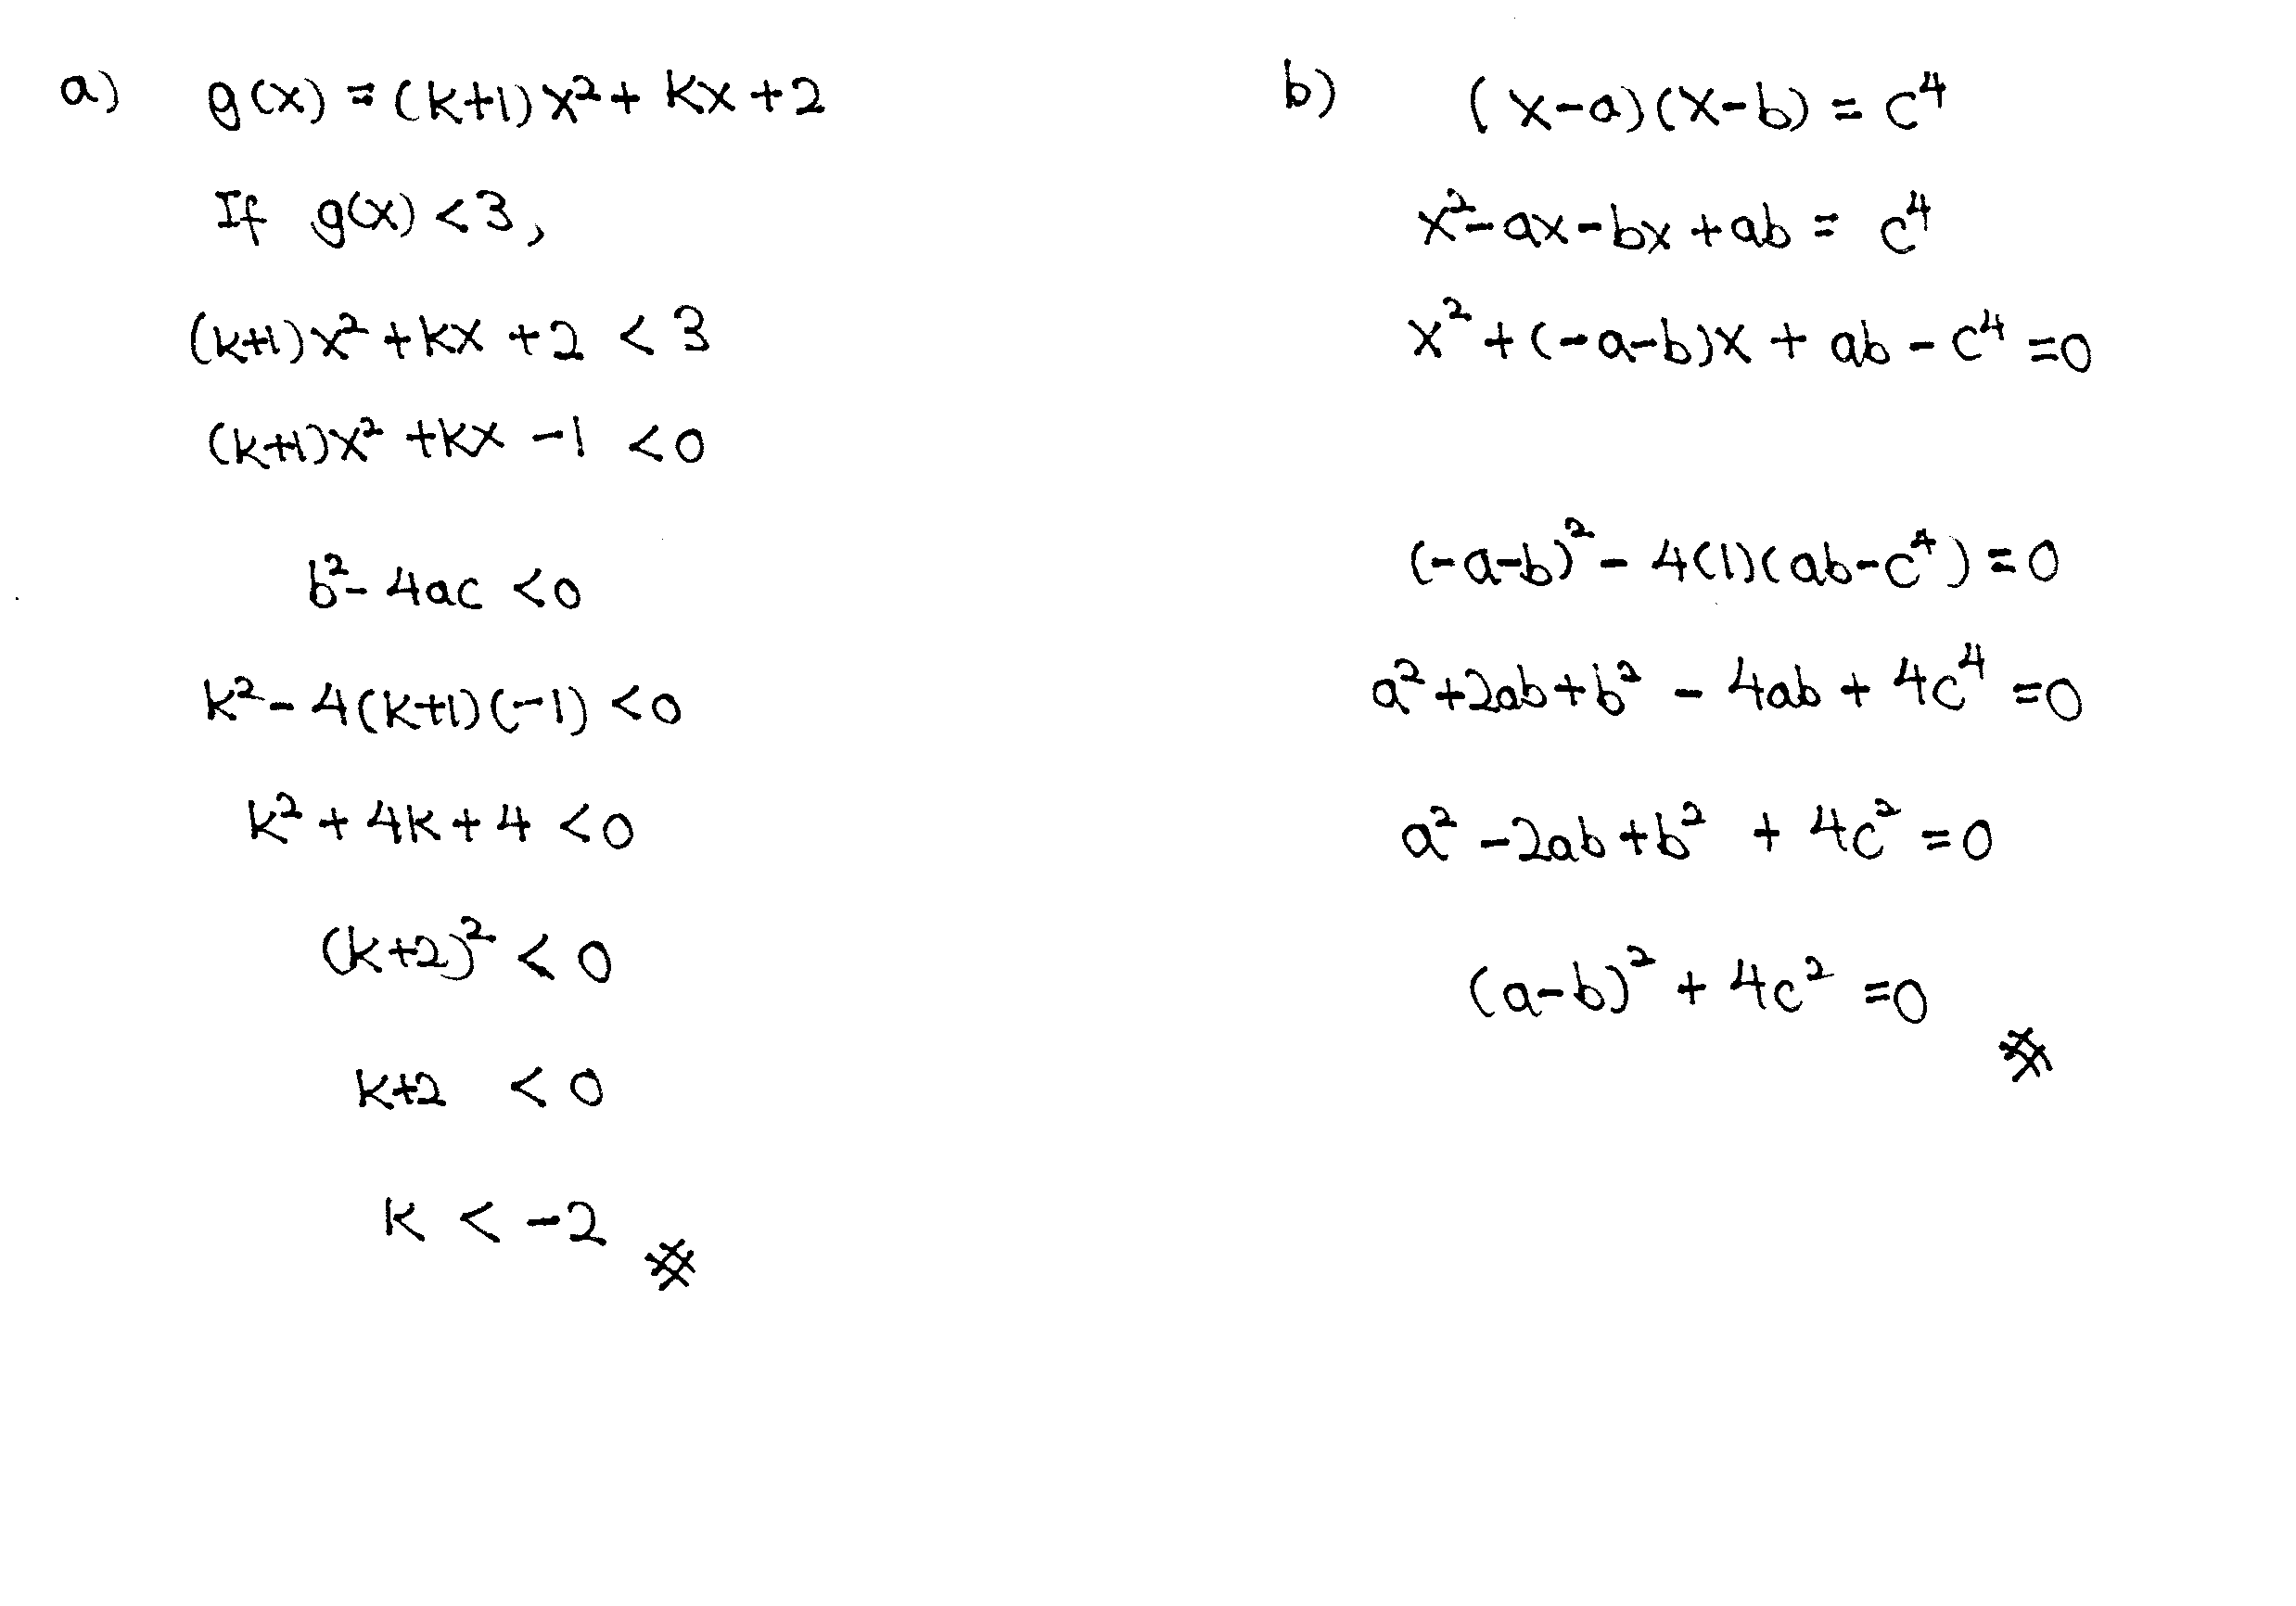 Singapore Math O-level JC Math Tuition Quadratic Equations Solution